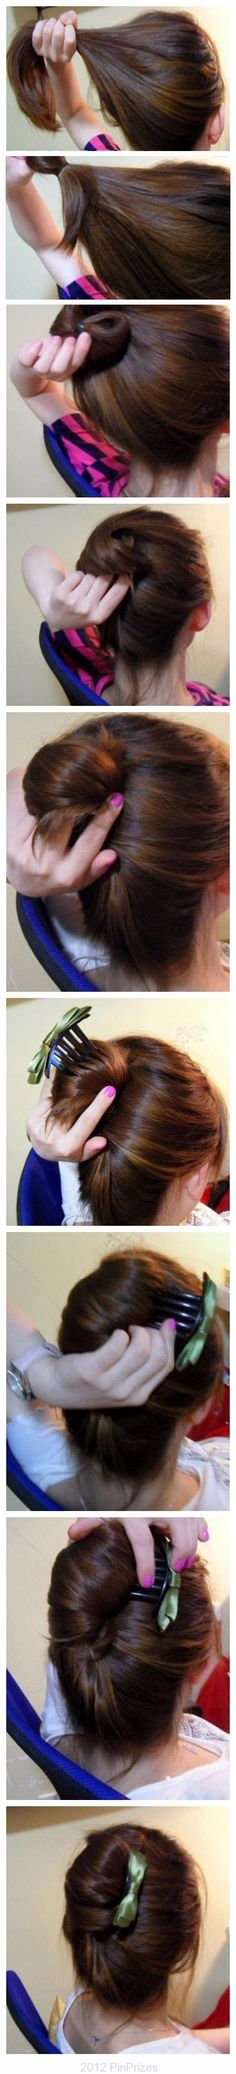 Because you never know when you'll need a weird hair do.